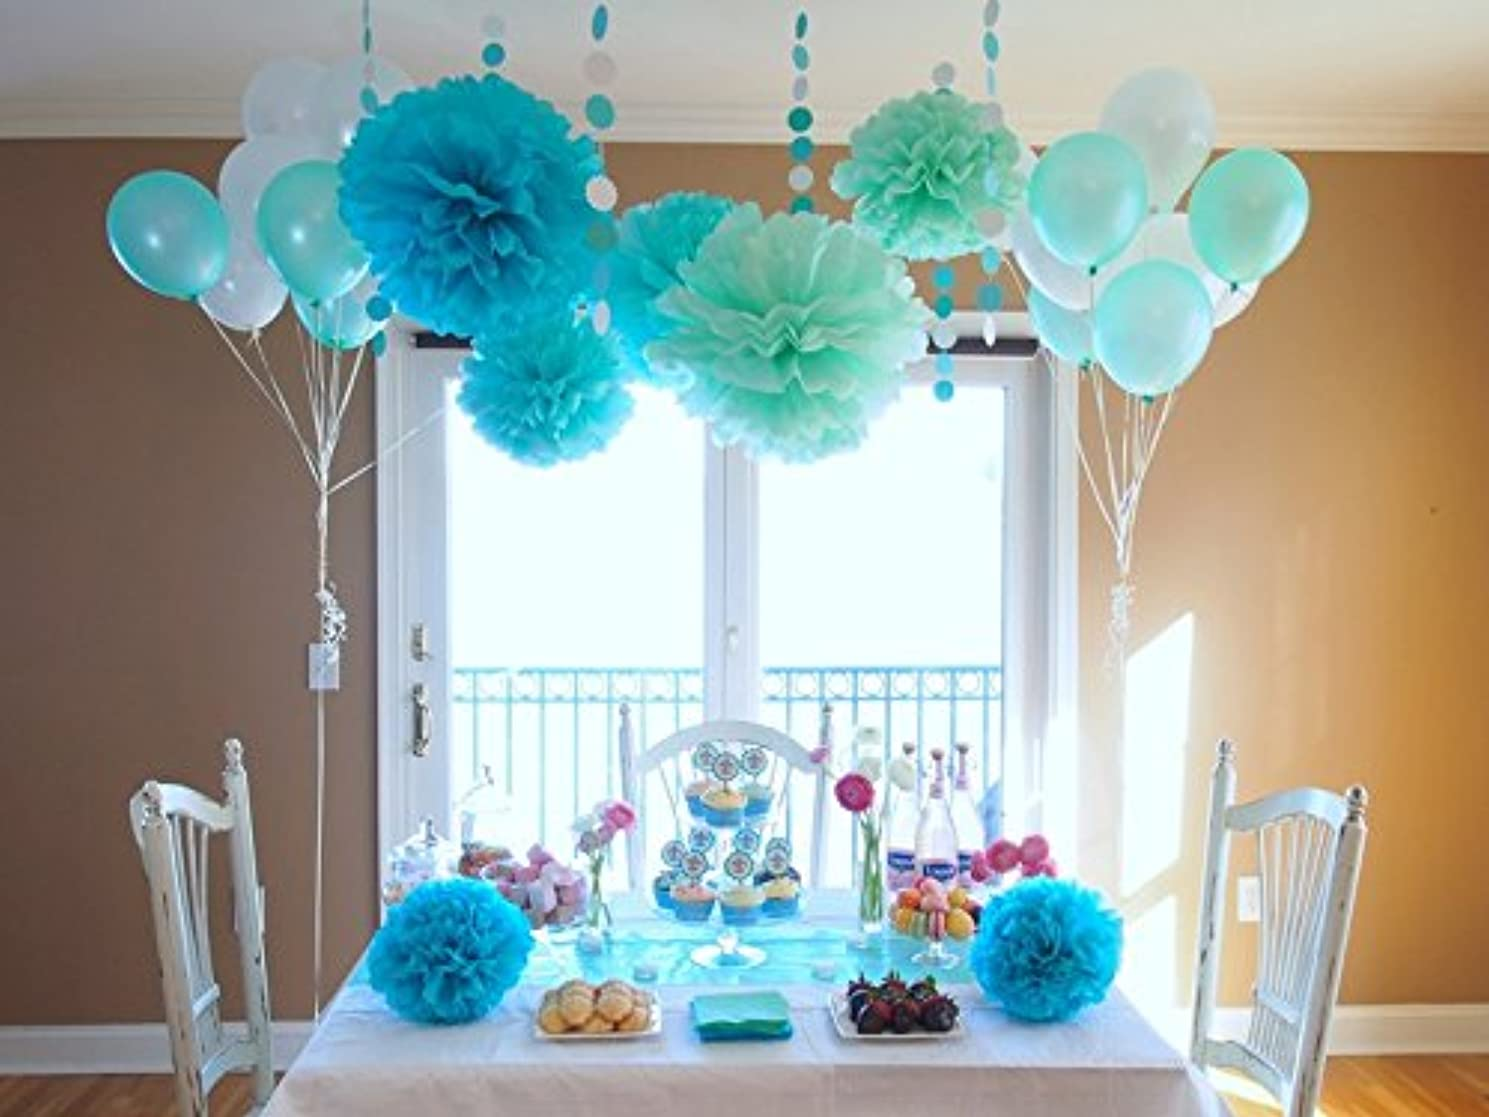 Sogorge Pack of 28 Pcs Mint Green Blue White Tissue Paper Pom Poms with White and Mint Balloon for Baby Shower Party Decorations